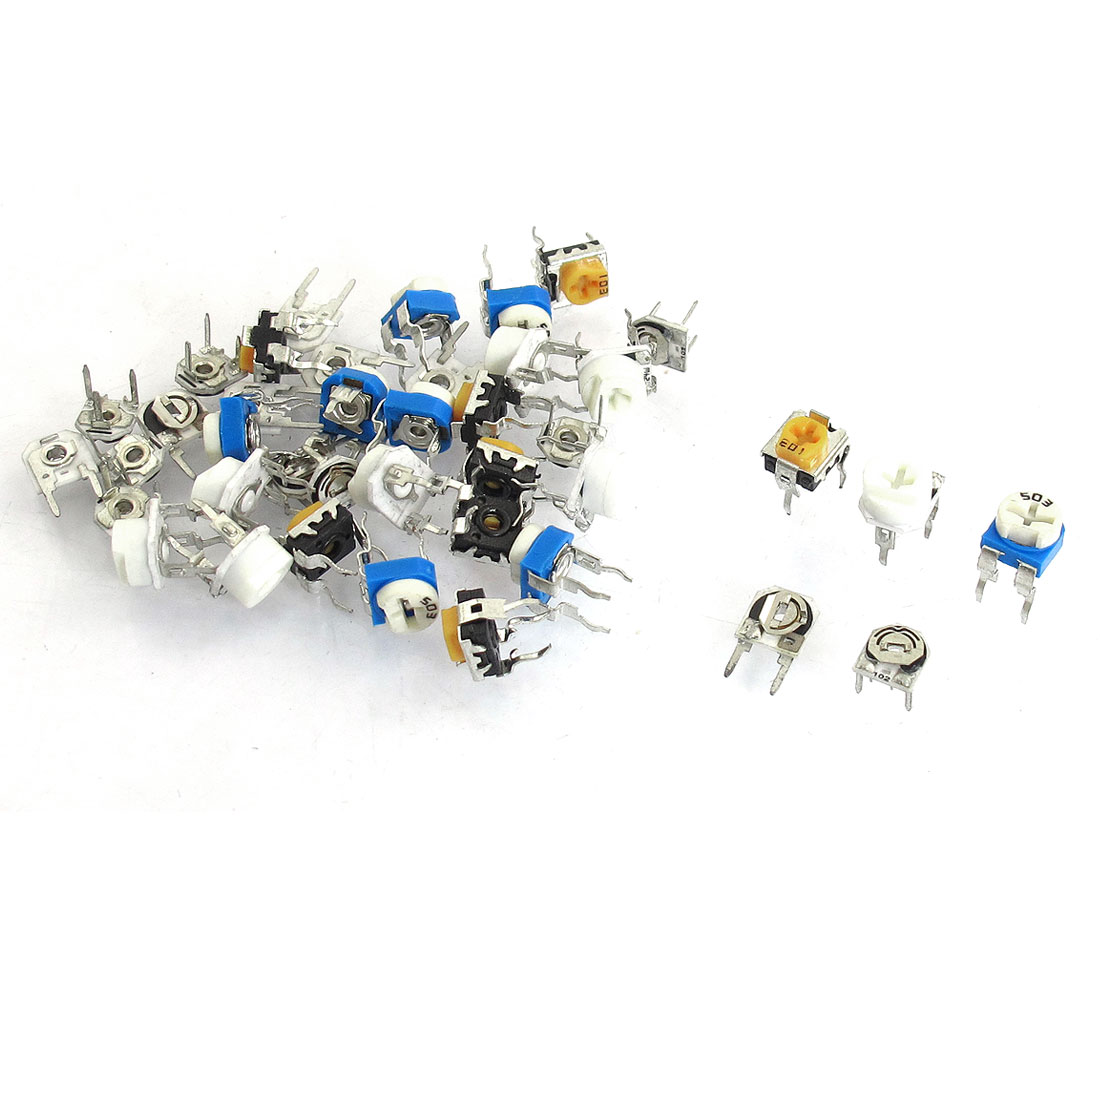 40 Pcs 1k 10k 20k 50k 200ohm Pots Potentiometer Adjustable Resistors